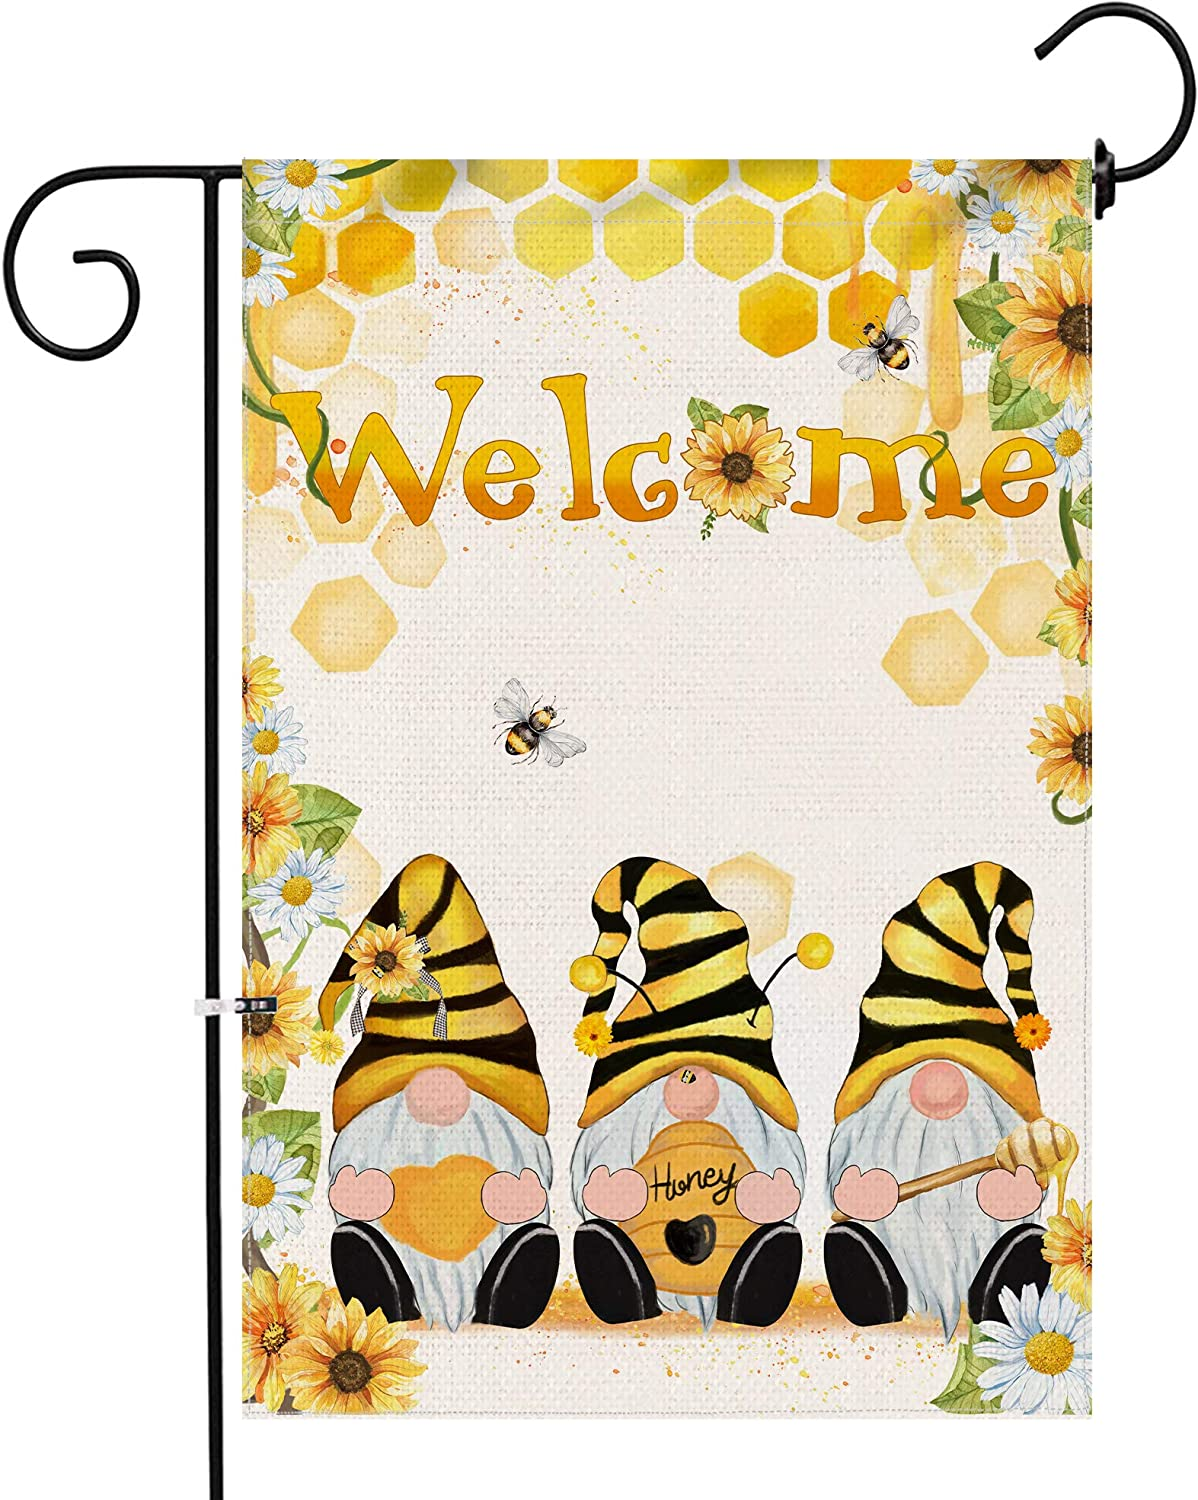 Hexagram Bee Gnomes Summer Garden Flag,Burlap Welcome Small Yard Flag 12x18 Double Sided,Spring and Summer Sunflower and Daisy Honey Outdoor Porch Lawn Decorations